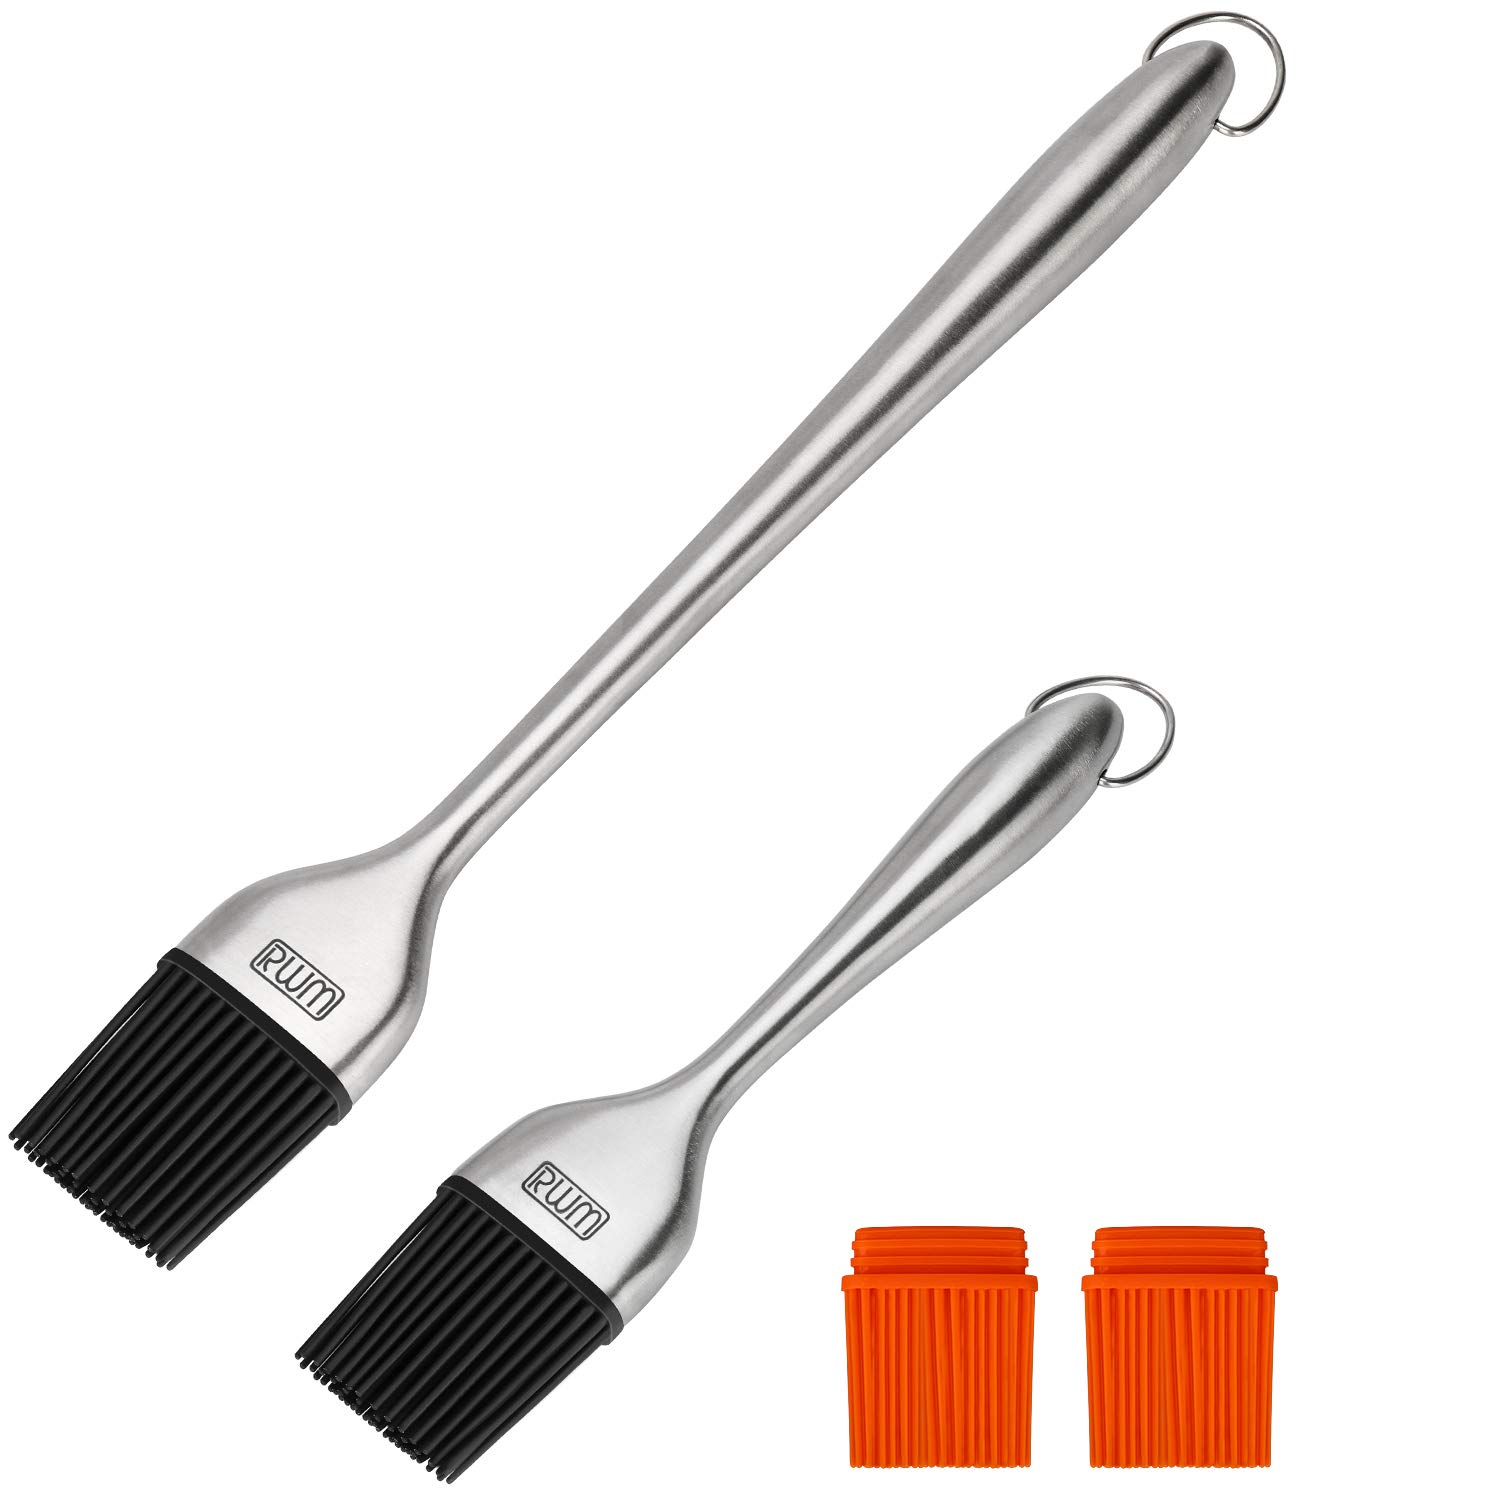 RWM Basting Brush - Grilling BBQ Baking, Pastry, and Oil Stainless Steel Brush with Back up Silicone Brush Heads(Orange) for Kitchen Cooking & Marinating, Dishwasher Safe by RWM